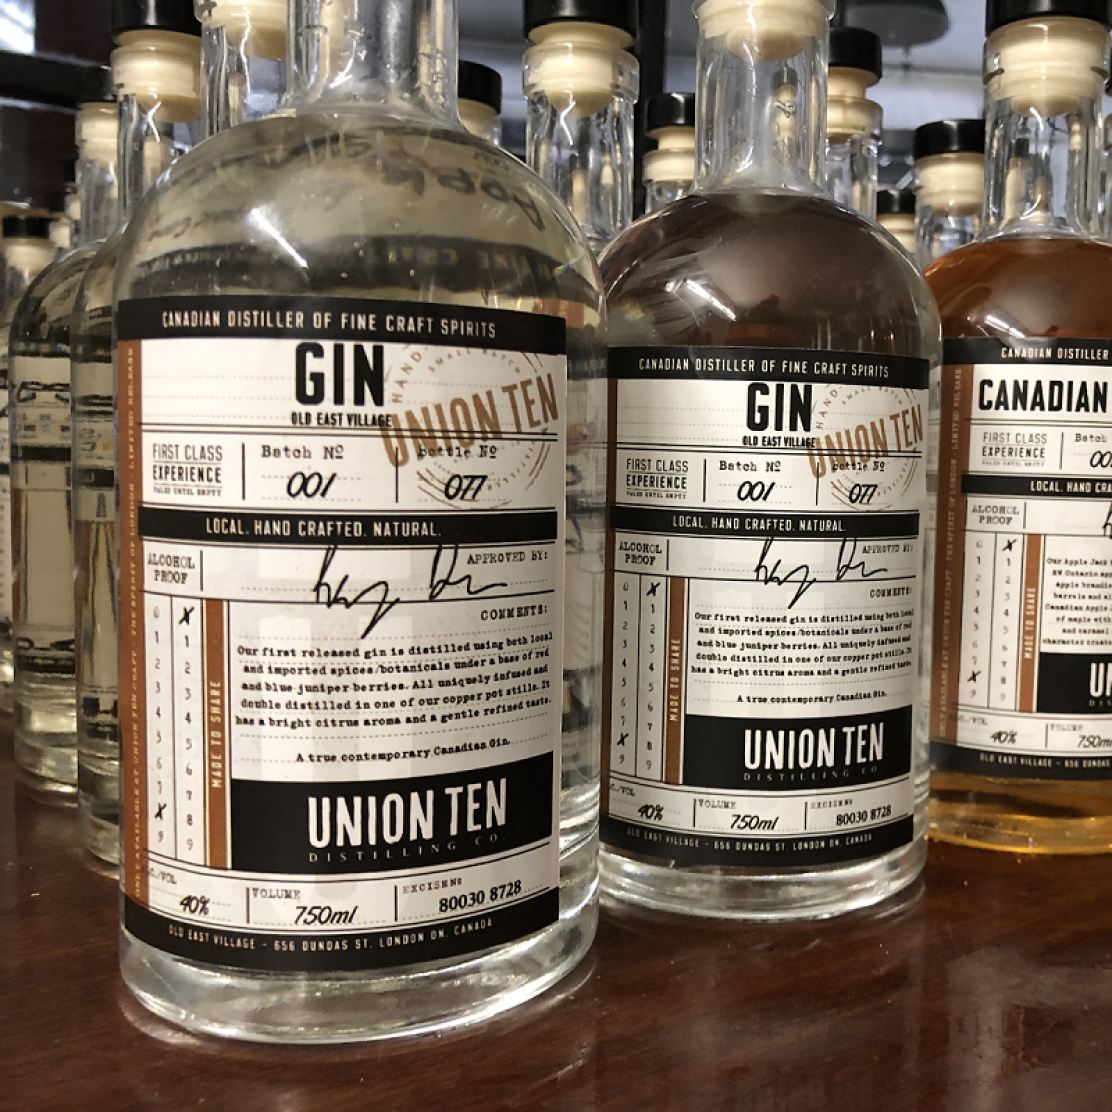 Photo for: Store Pick Up By Union Ten Distilling Co In Canada.